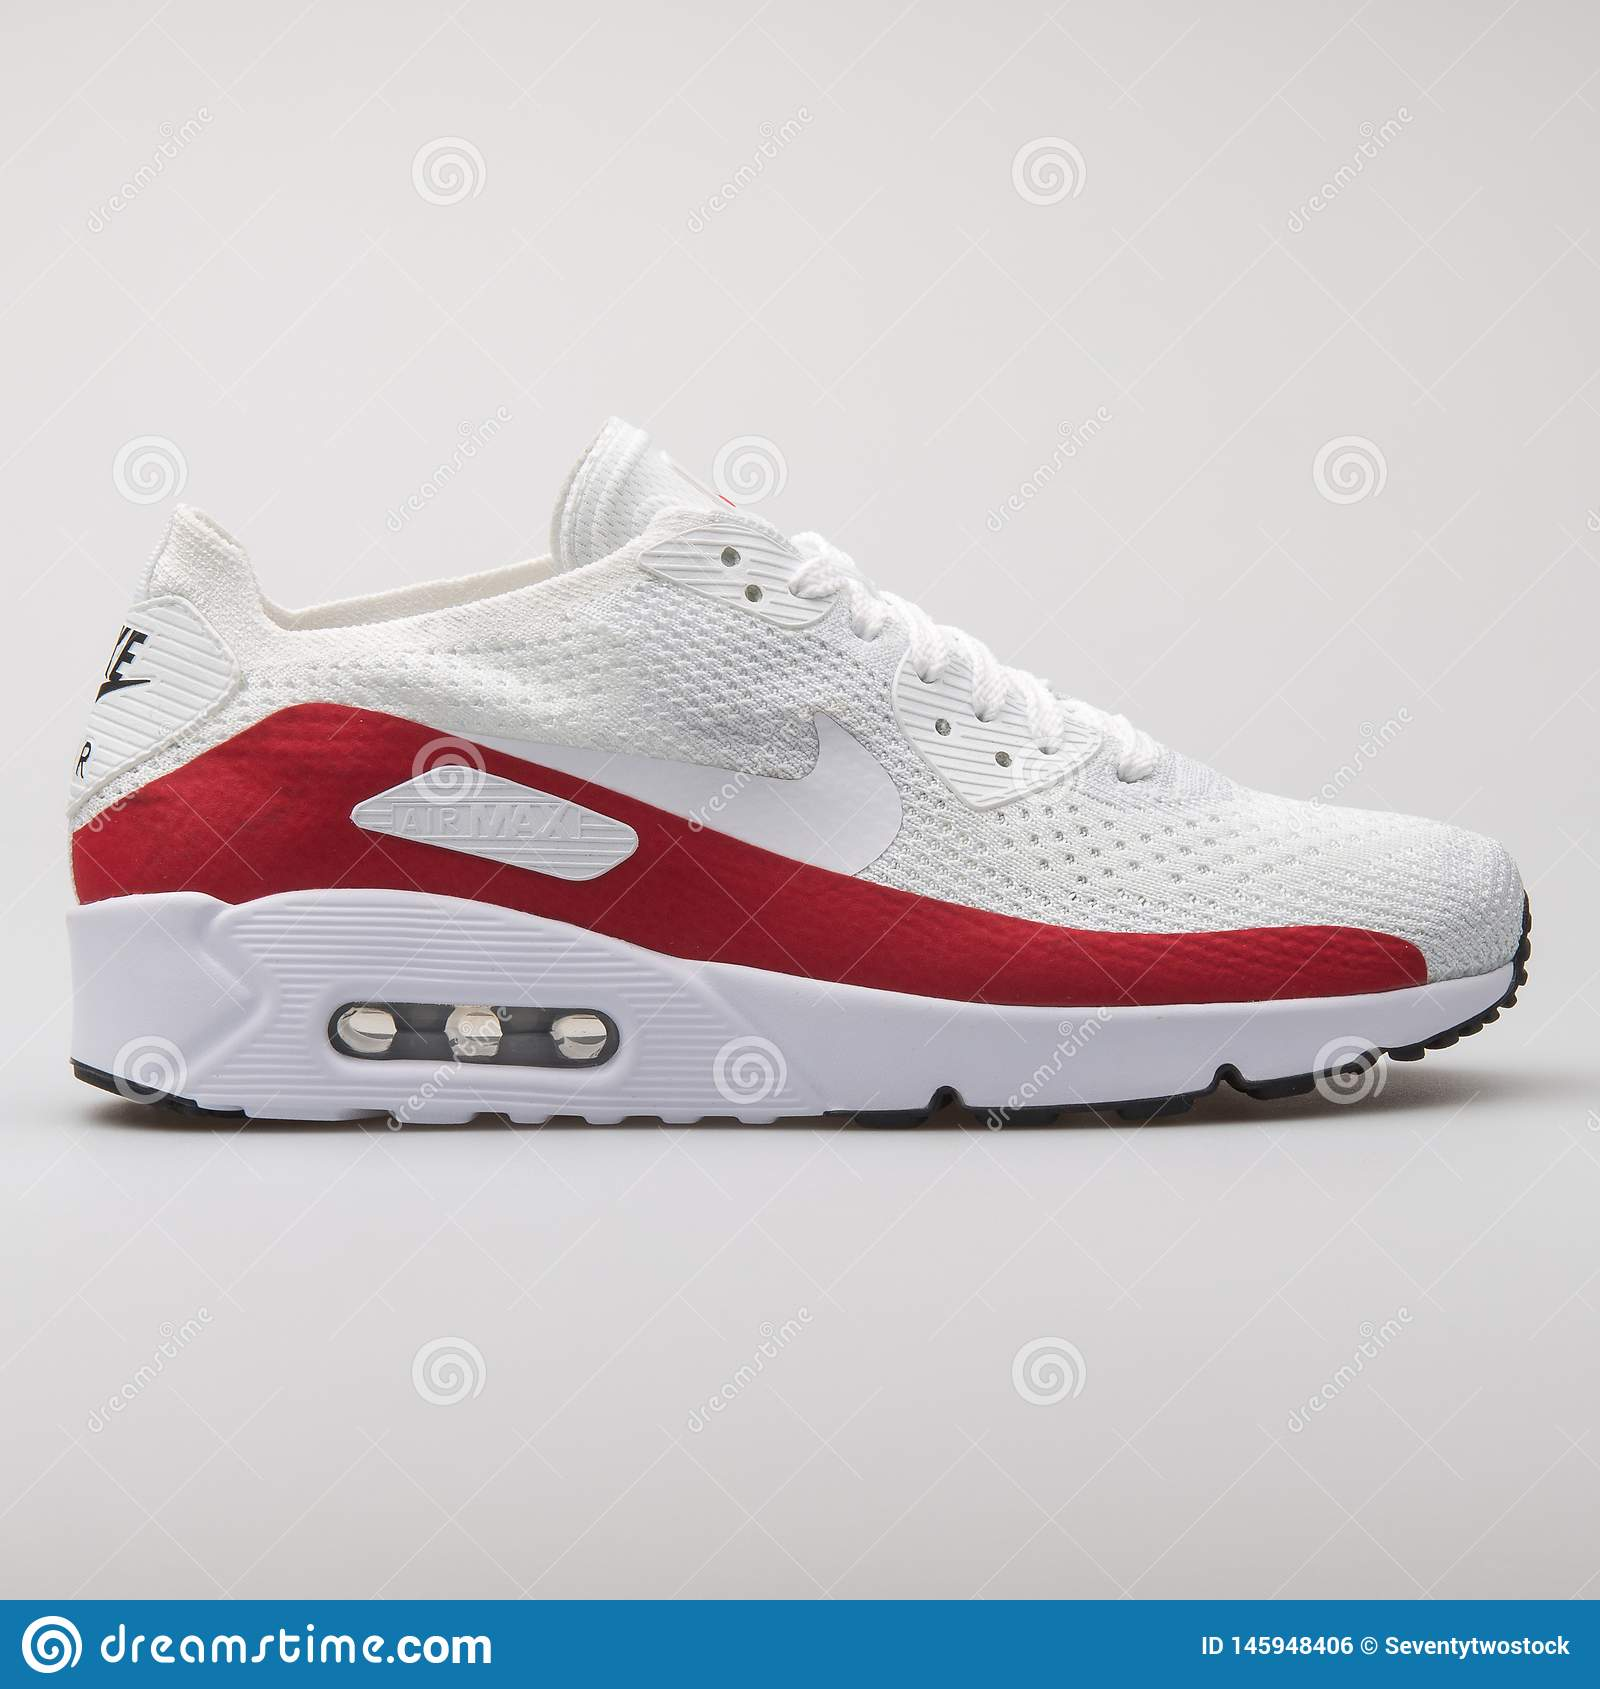 separation shoes 77391 74a34 Nike Air Max 90 Ultra 2.0 Flyknit White And Red Sneaker ...